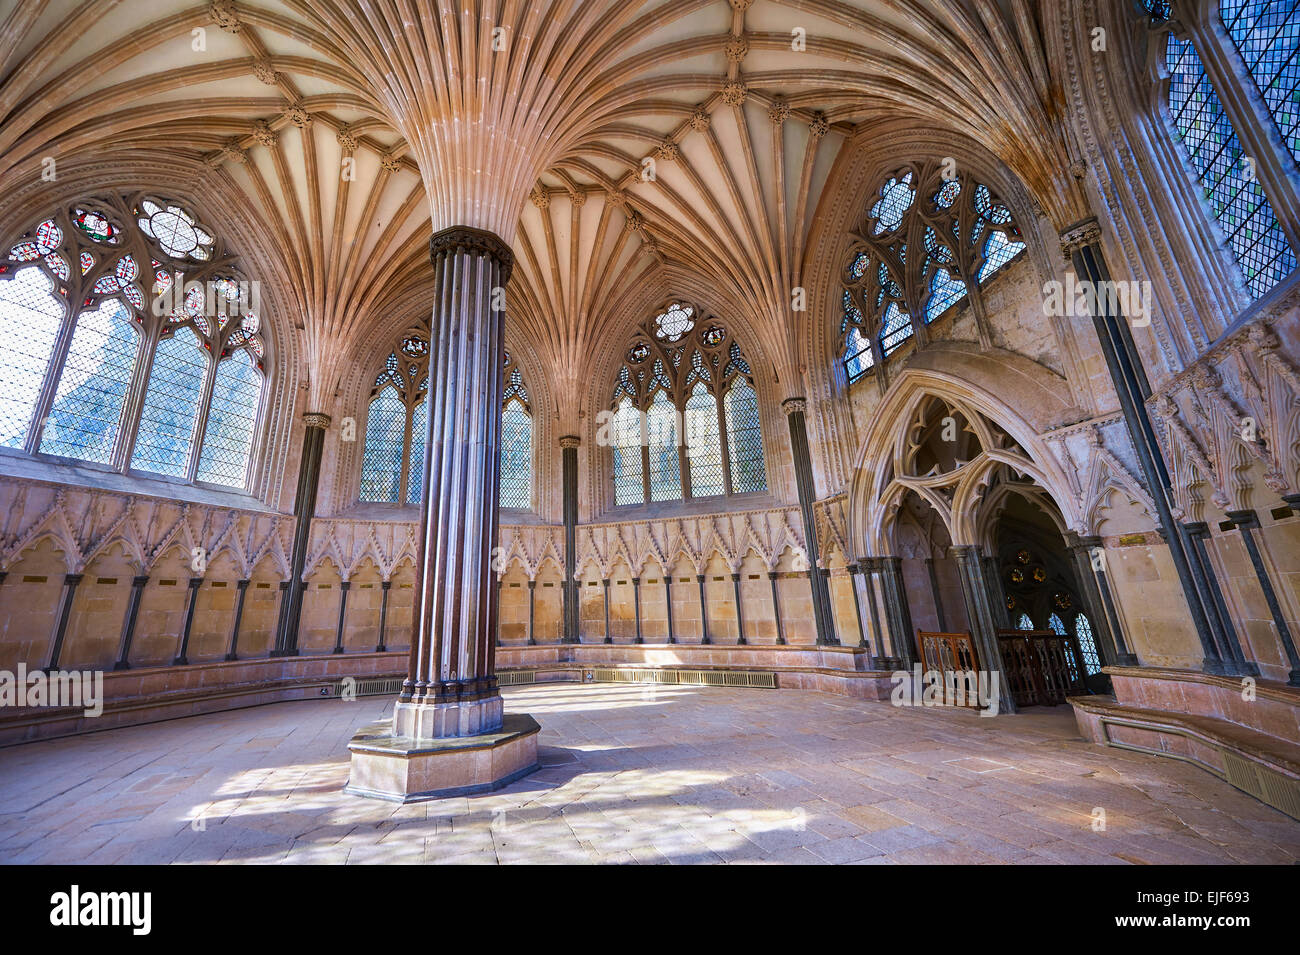 The Vaulted Ceiling Of Chapter House Medieval Wells Cathedral Built In Early English Gothic Style 1175